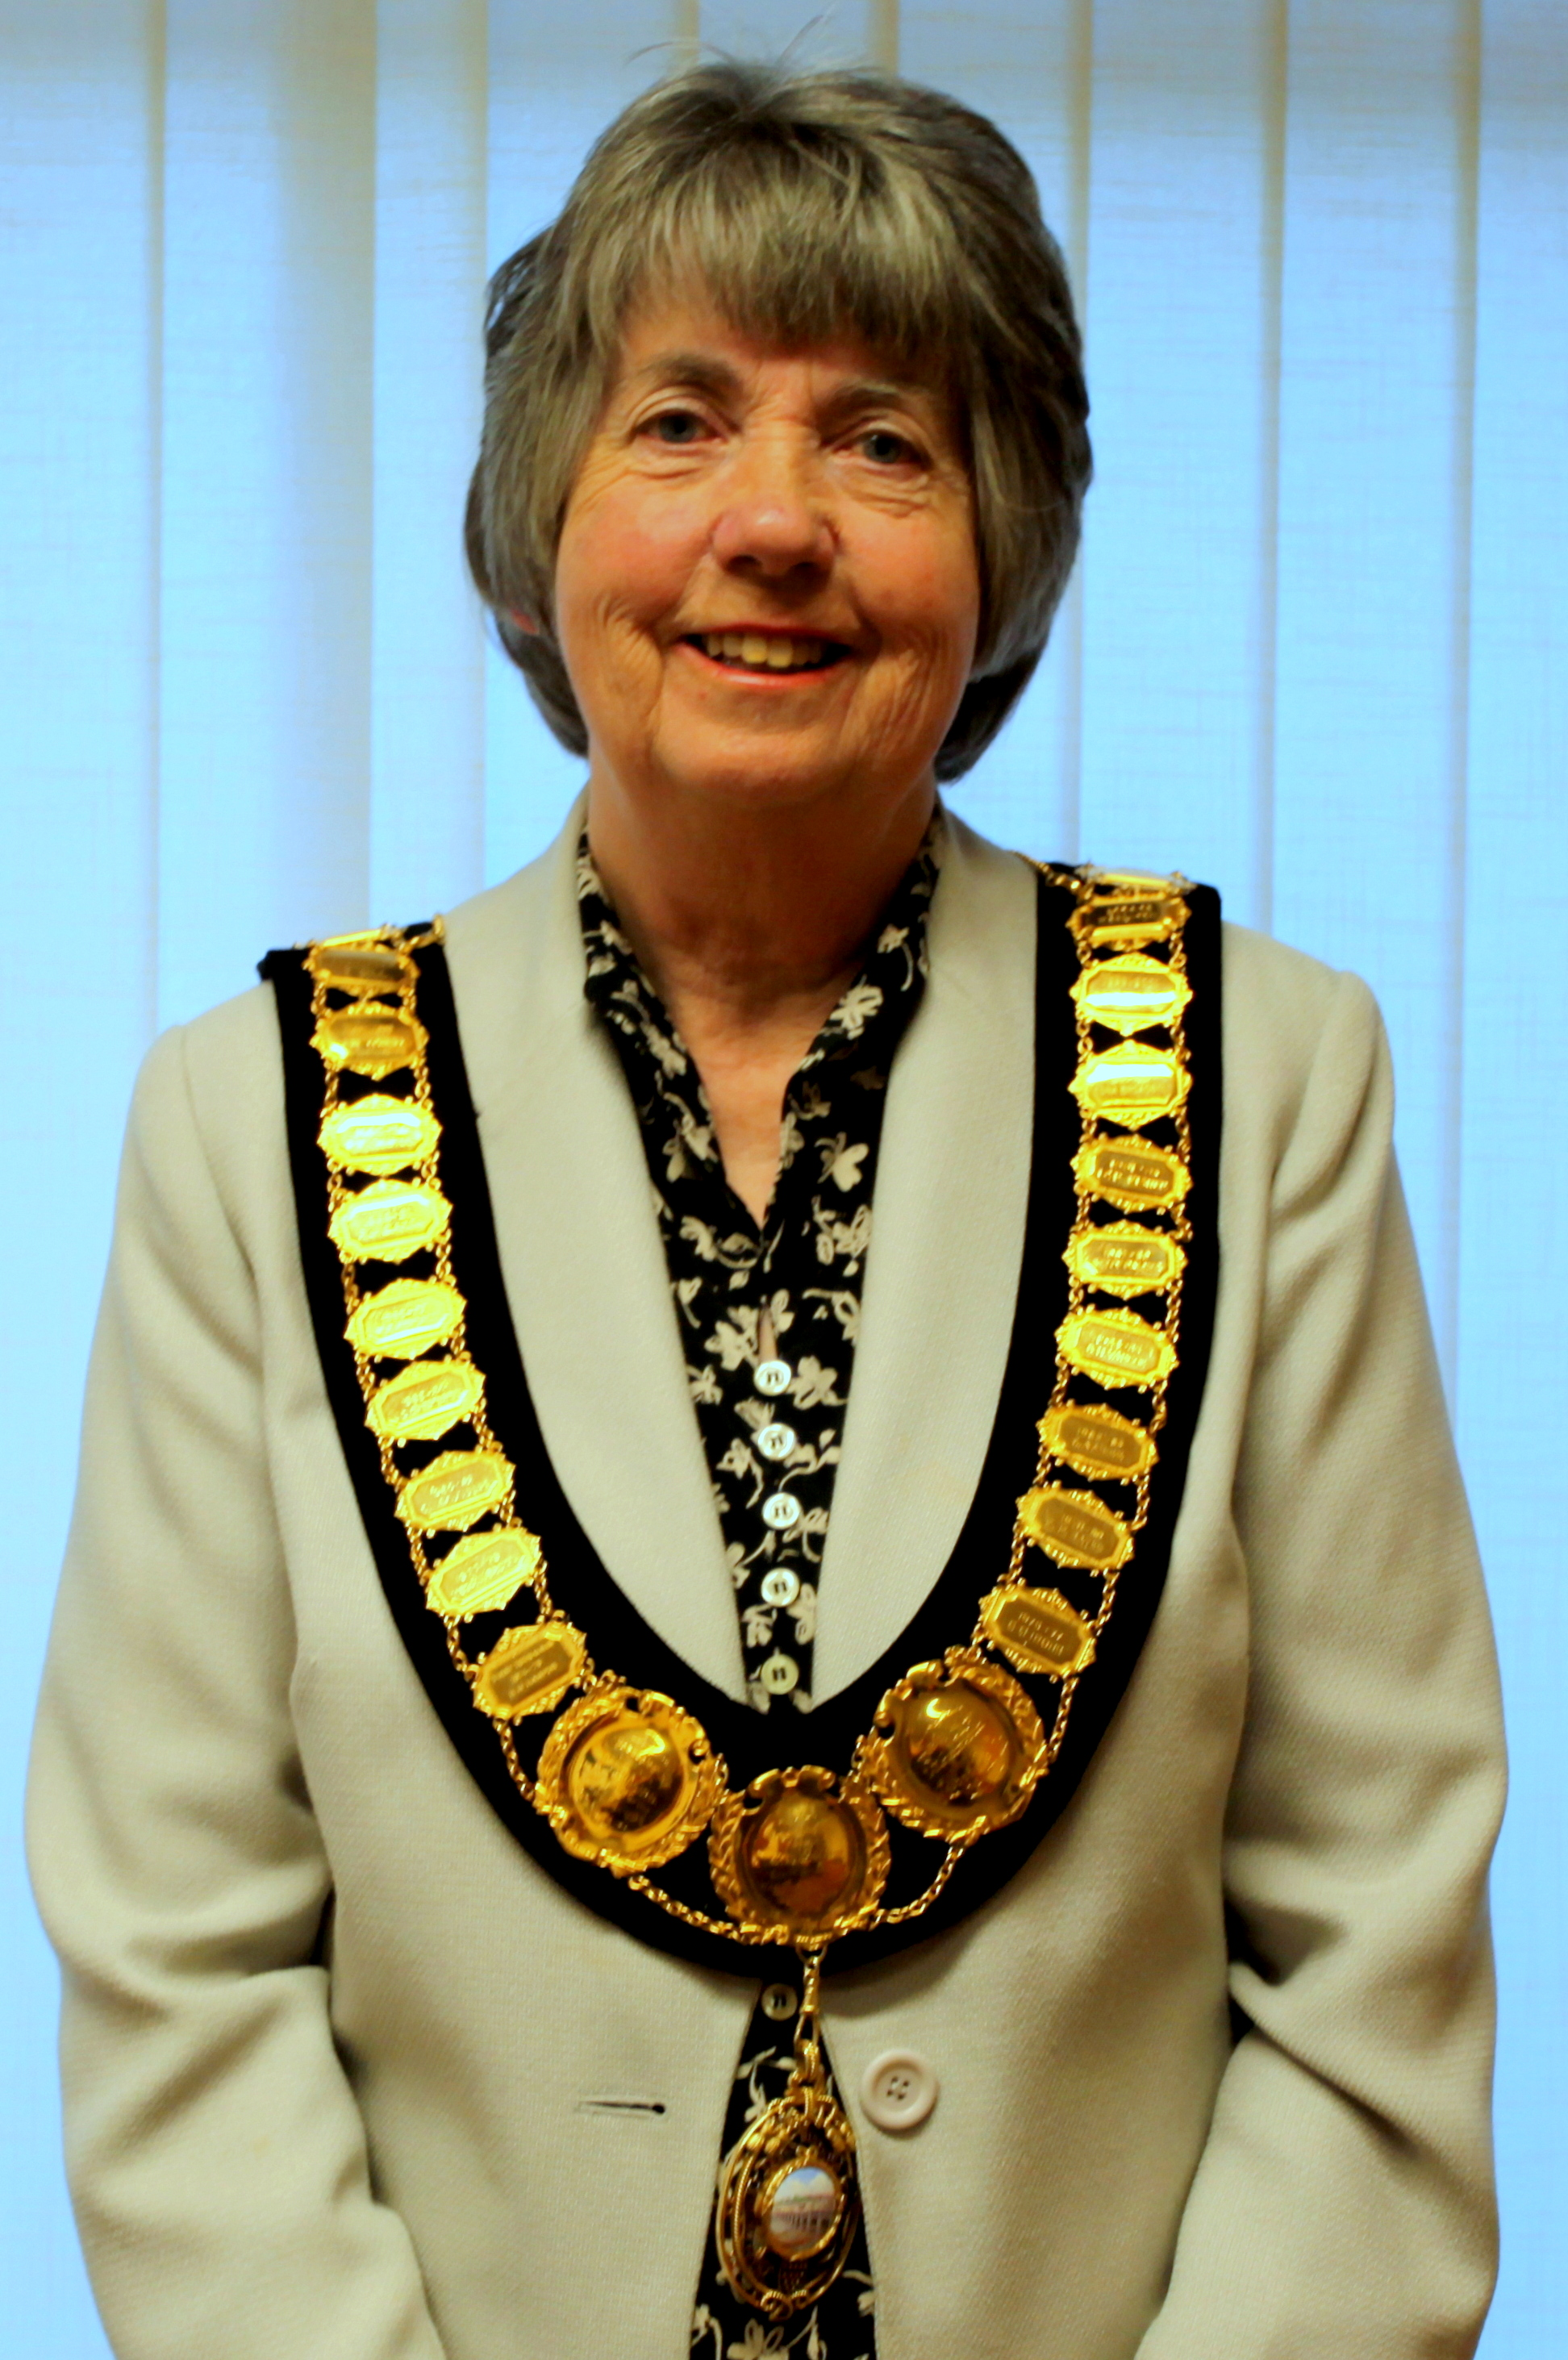 Cllr Starling Mayor 2